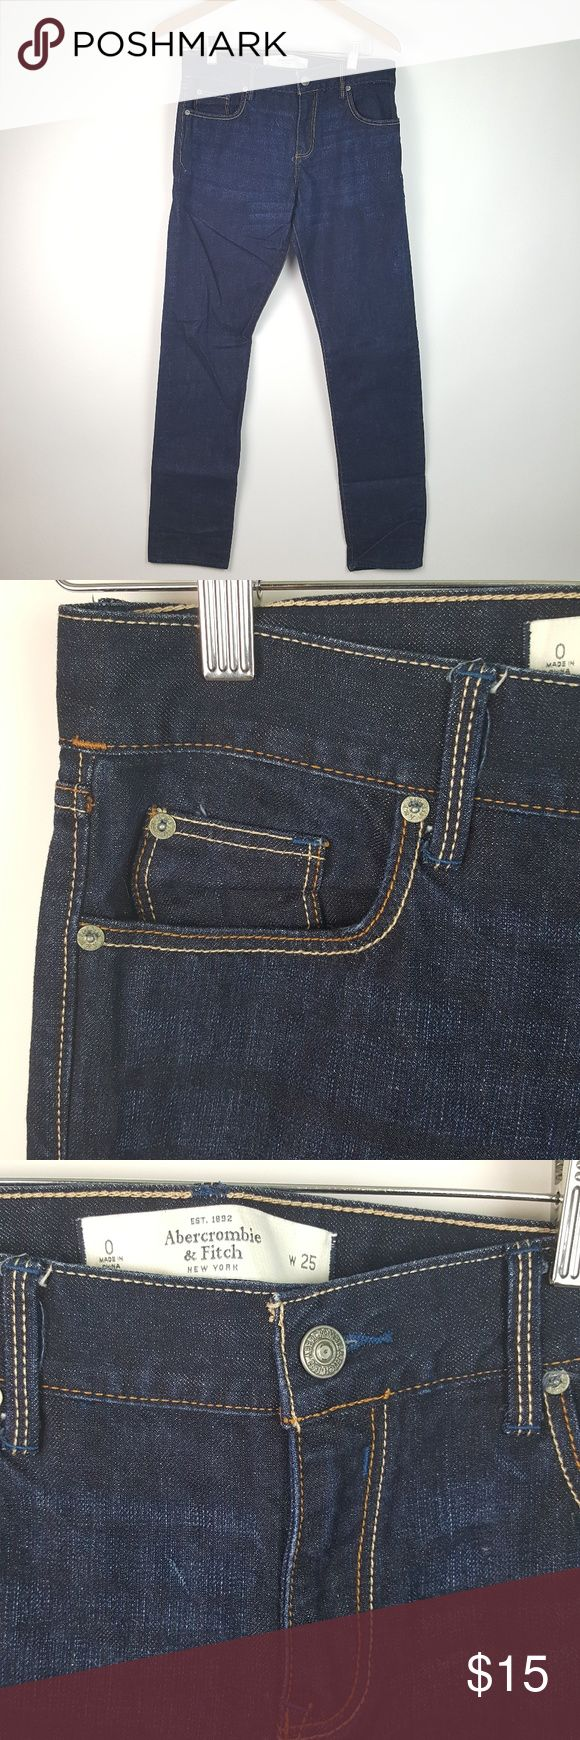 """Abercrombie & Fitch Dark Wash Jeans Sz O AR1 Abercrombie & Fitch Womens Dark Wash Jeans Size 0 25"""" Waist  EUC....NO stains, holes, rips, pilling or fading.  Waist: 15"""" Rise: 9.5"""" Hips: 18 Inseam: 31"""" *measurements are taken laying flat and are APPROXIMATE*  ALL ITEMS FROM A SMOKE FREE HOME Abercrombie & Fitch Jeans Straight Leg"""